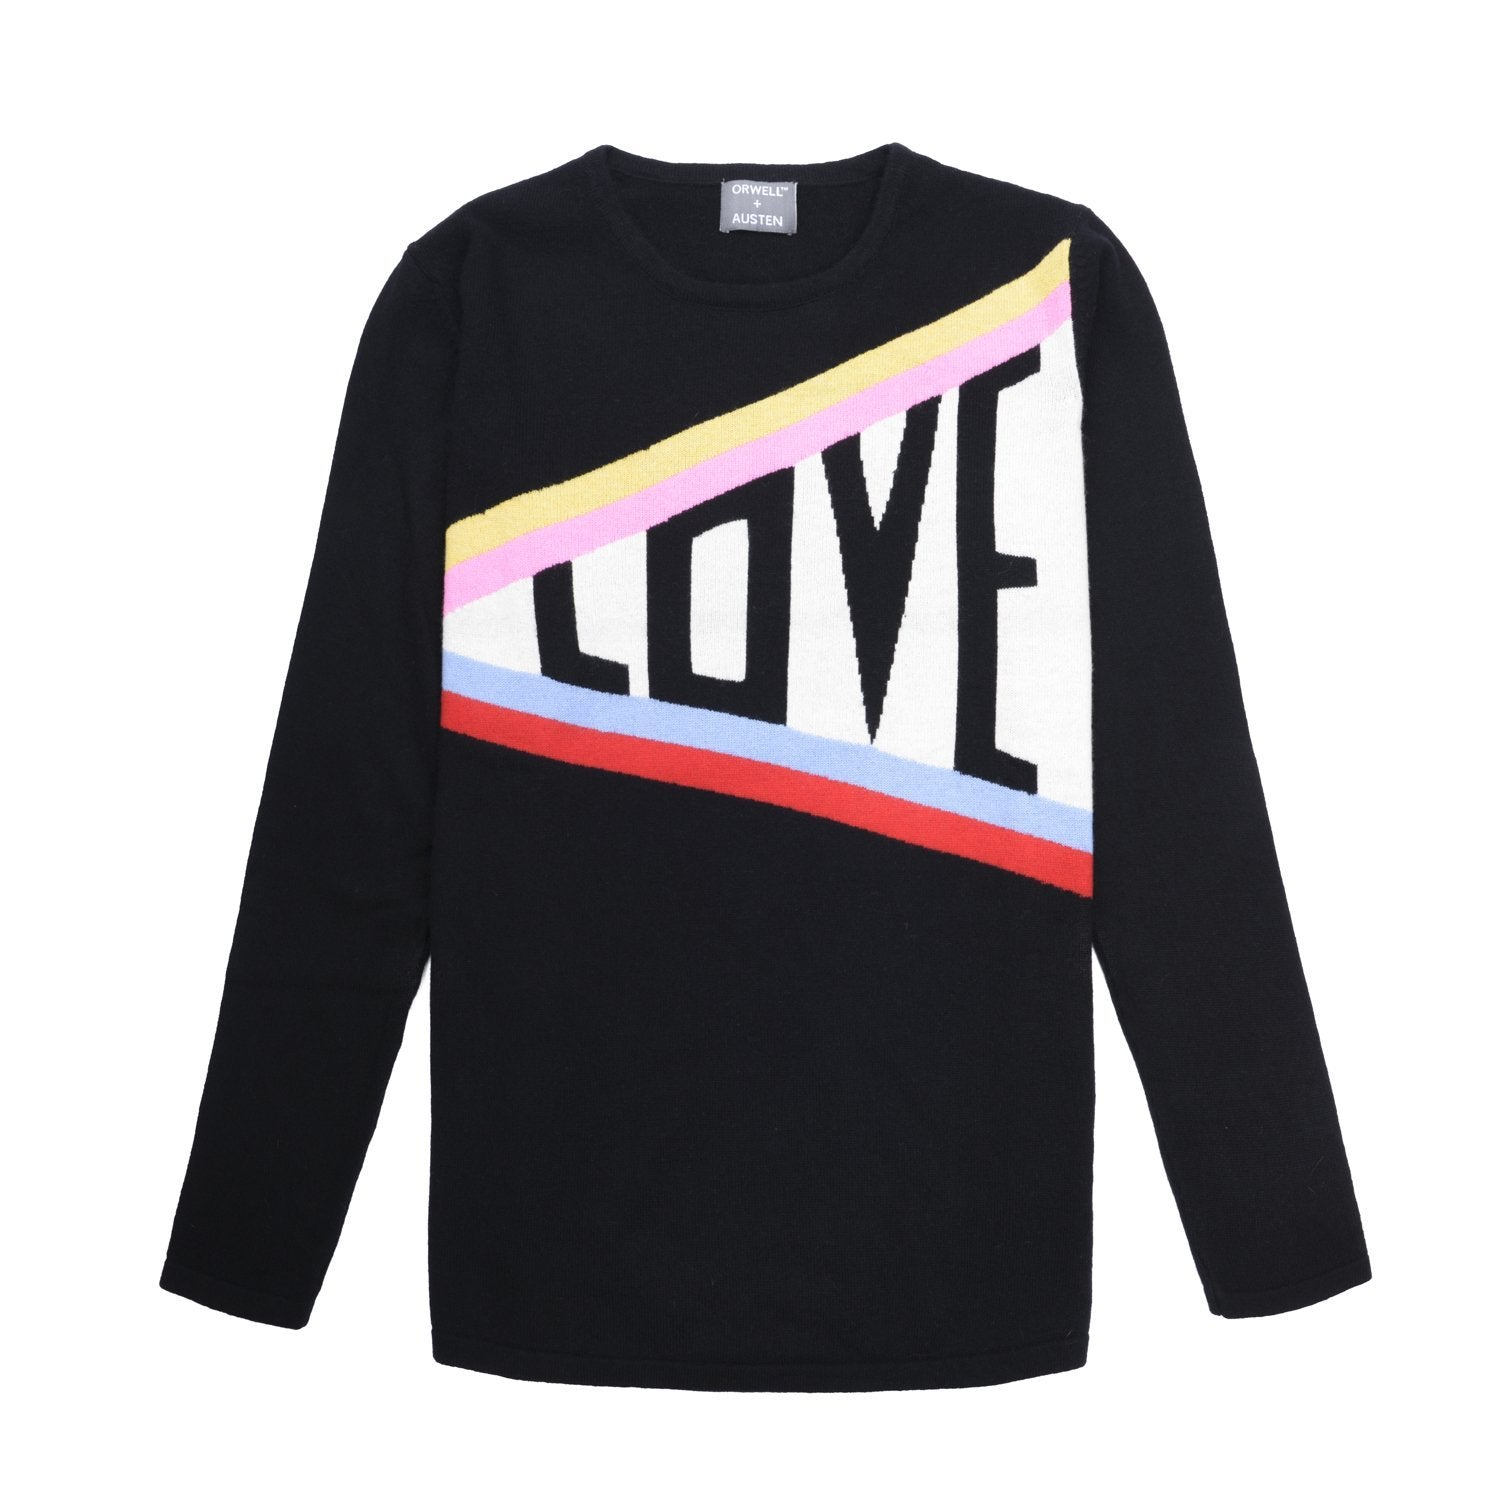 cashmere and wool blend women's sweater in black featuring love slogan with rainbow stripe